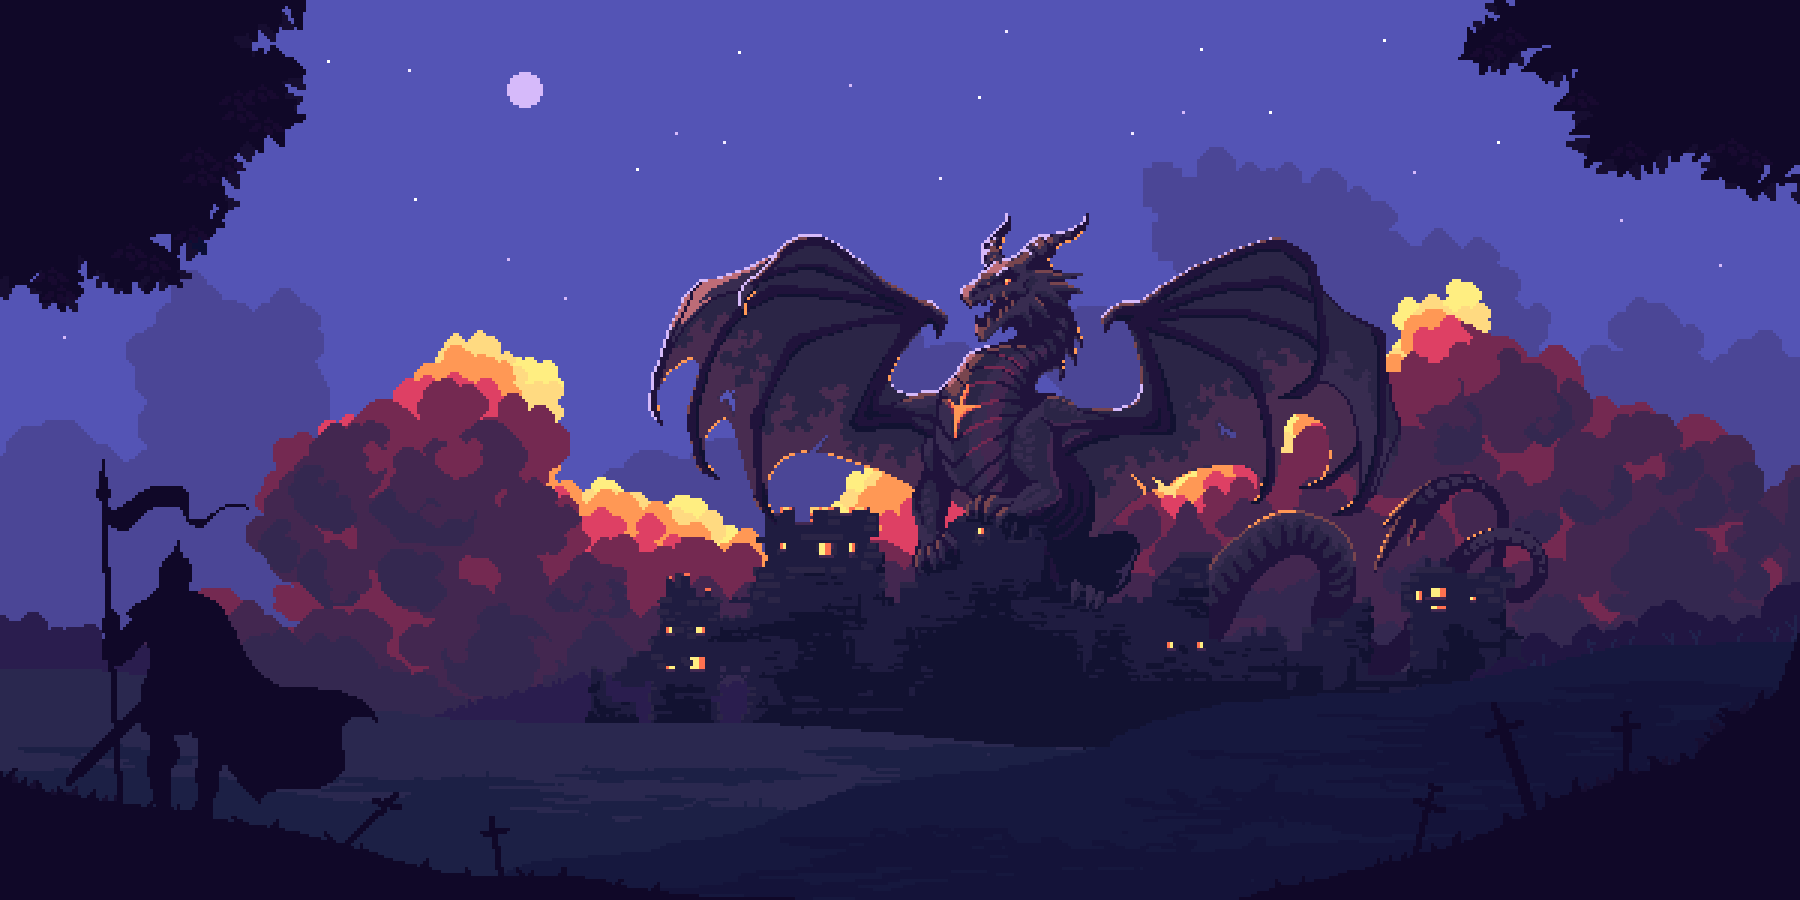 Dragon Castle collab with @theartistjulian on Twitter